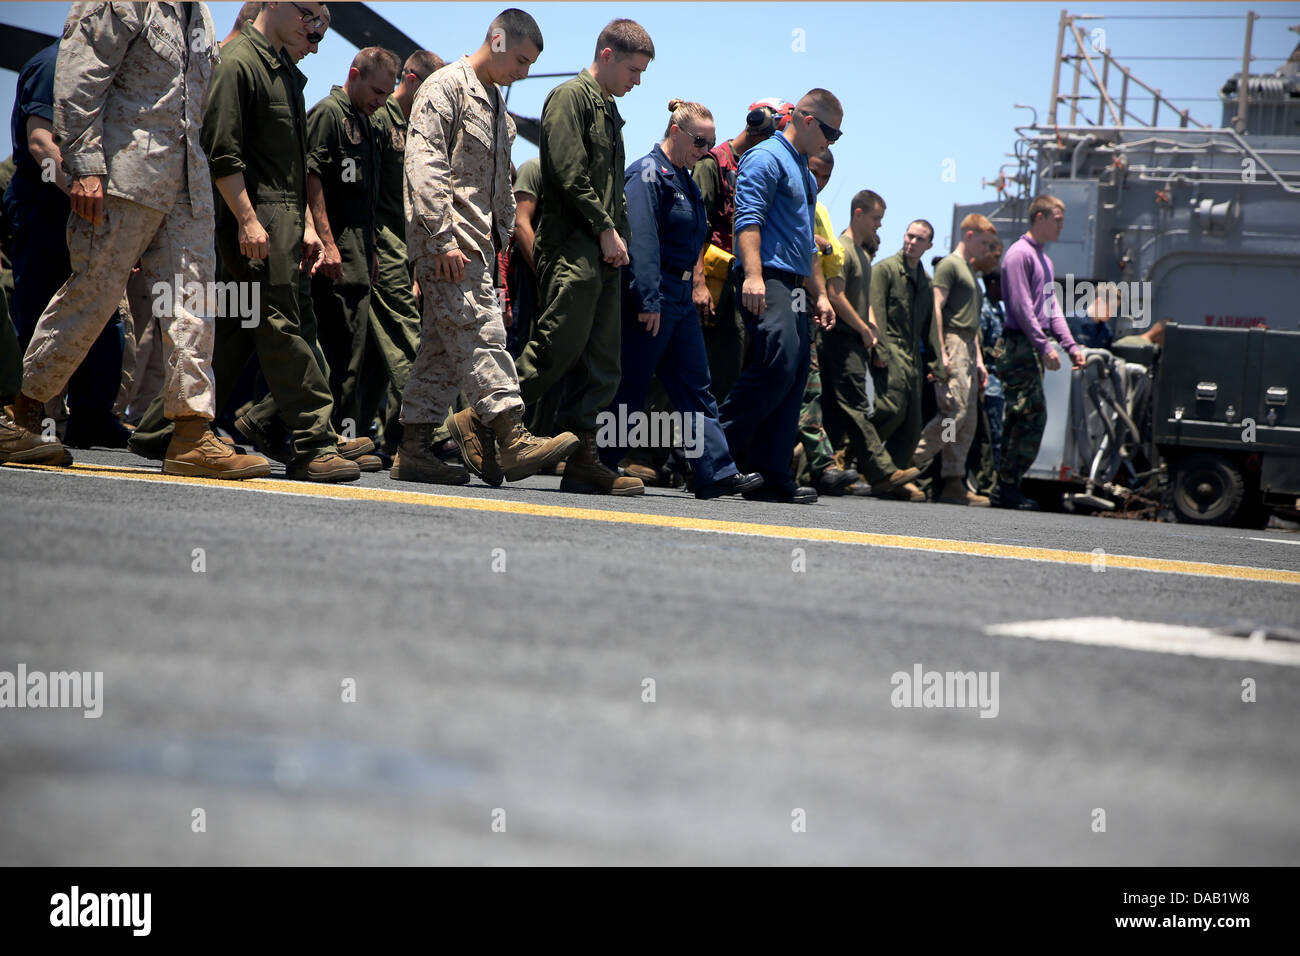 Sailors and Marines conduct a foreign object debris (FOD) walkdown aboard the amphibious assault ship USS Kearsarge - Stock Image